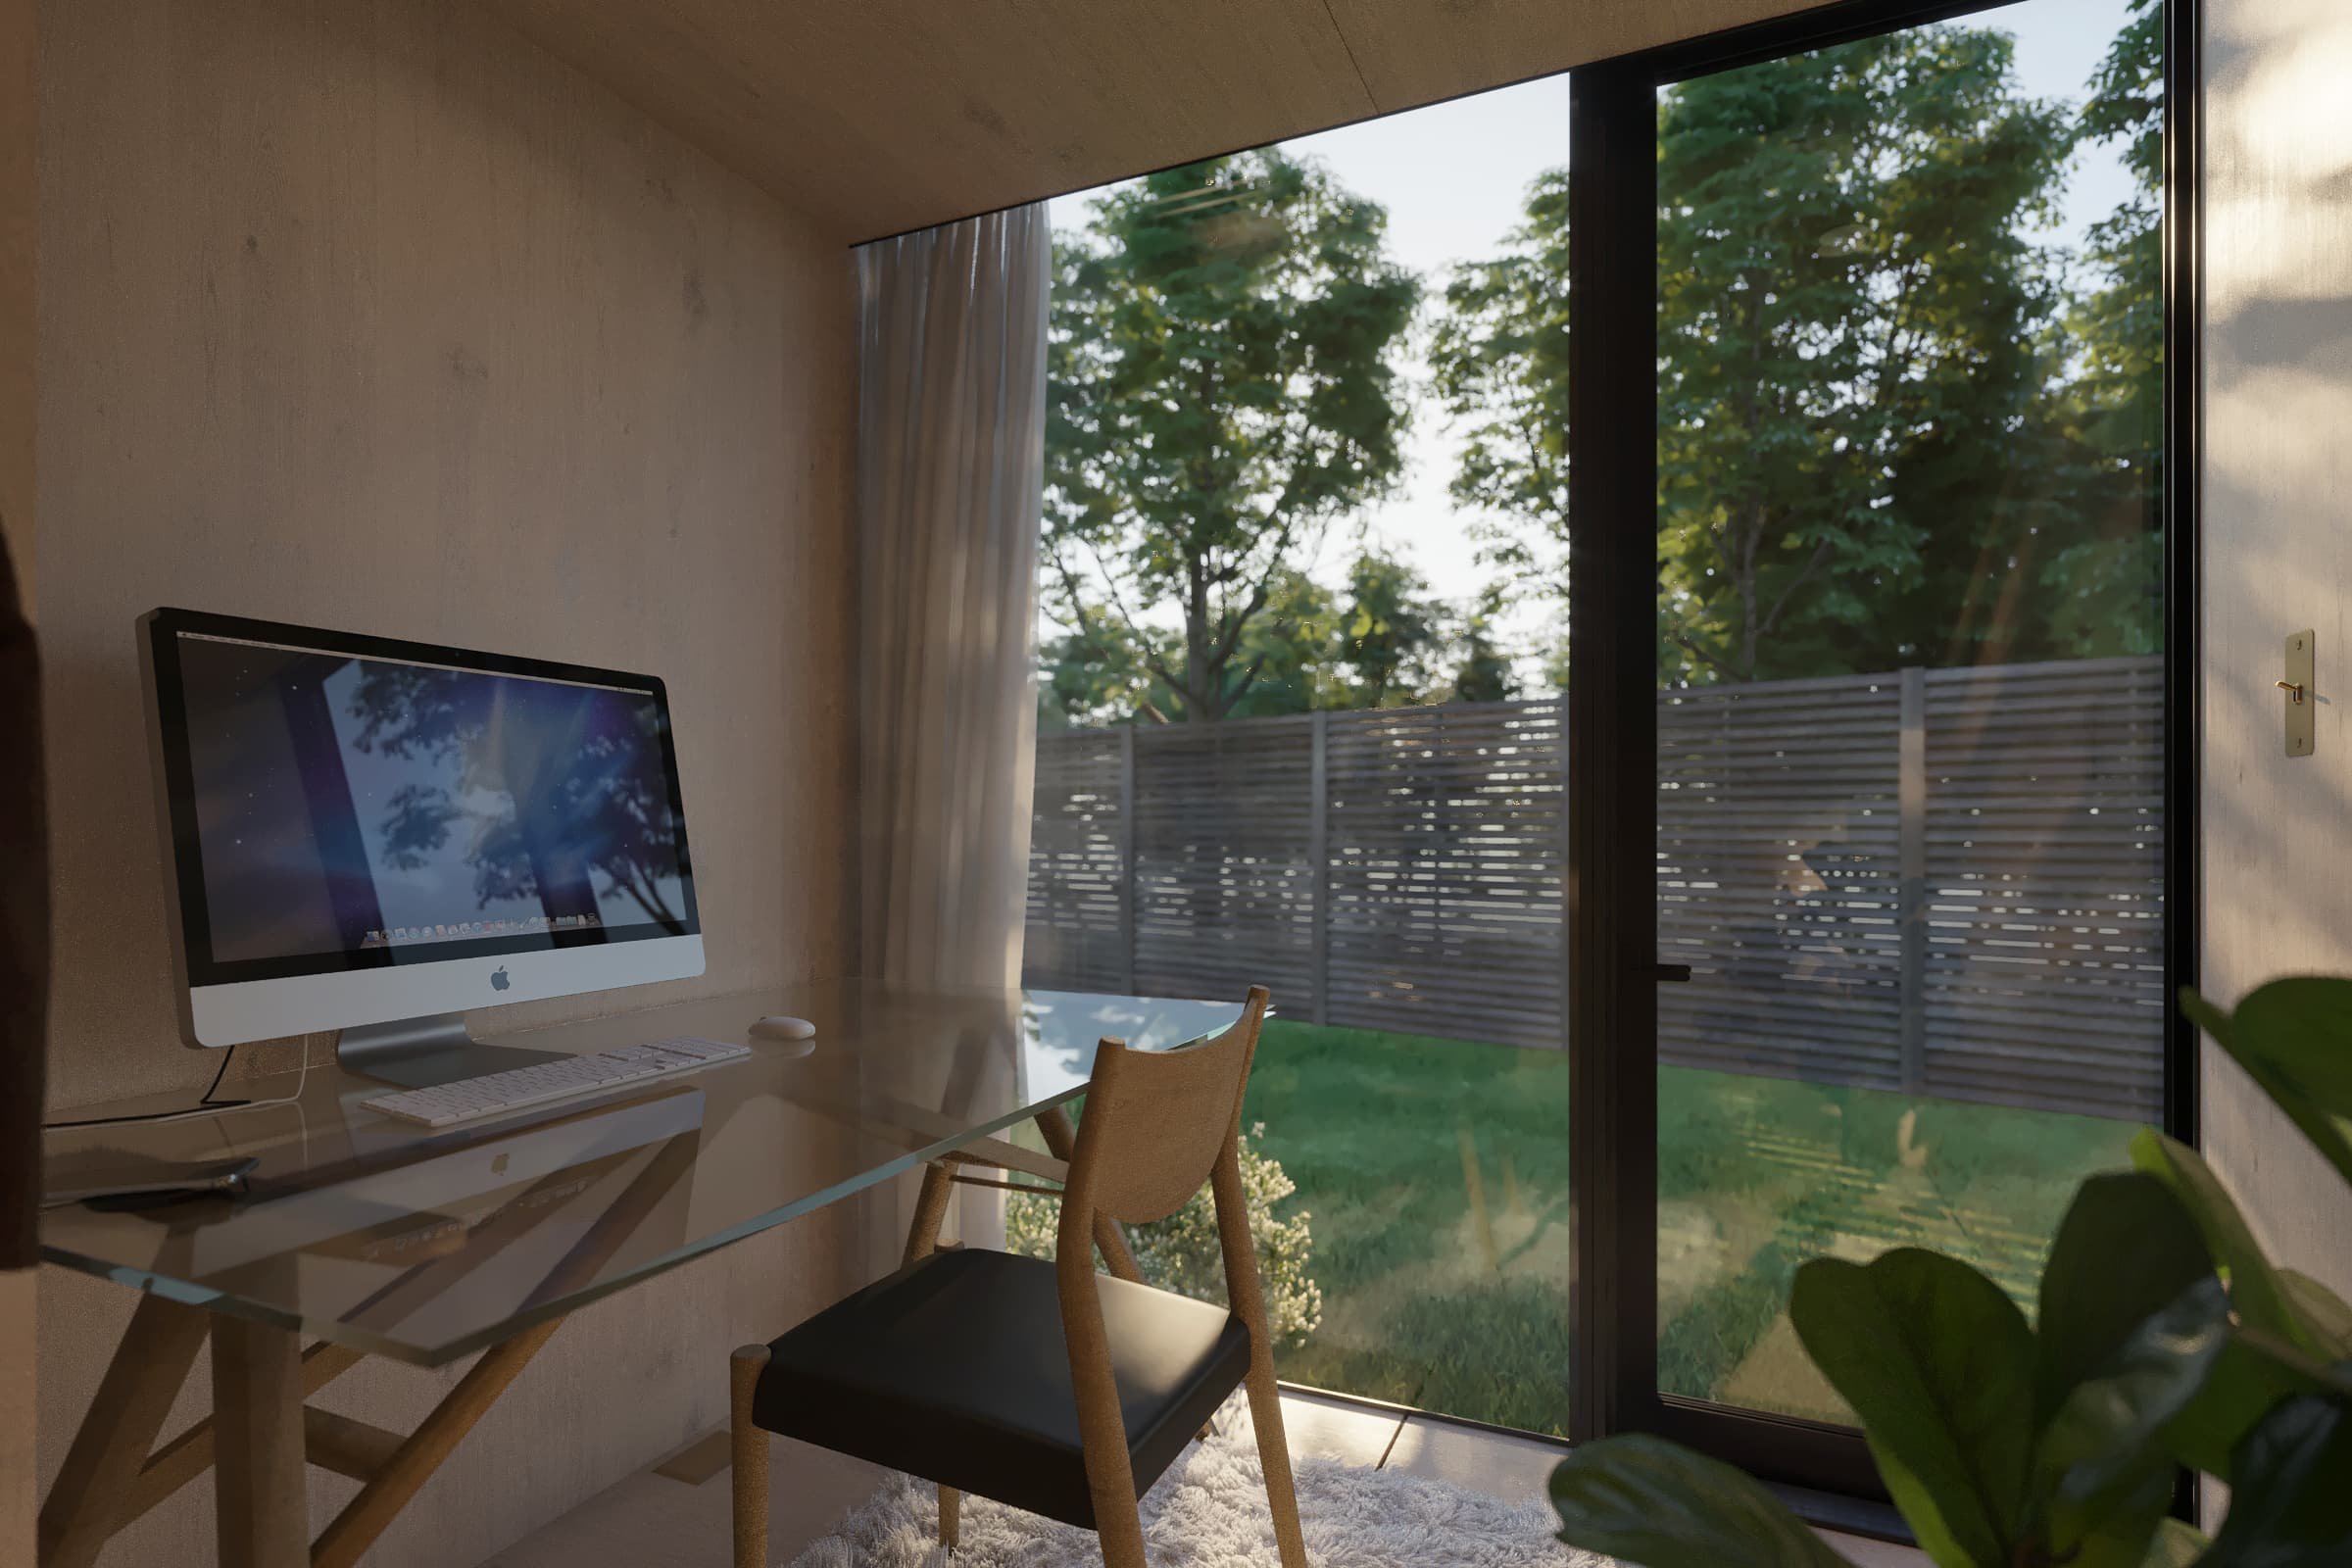 The interior of a backyard office with wood finishes